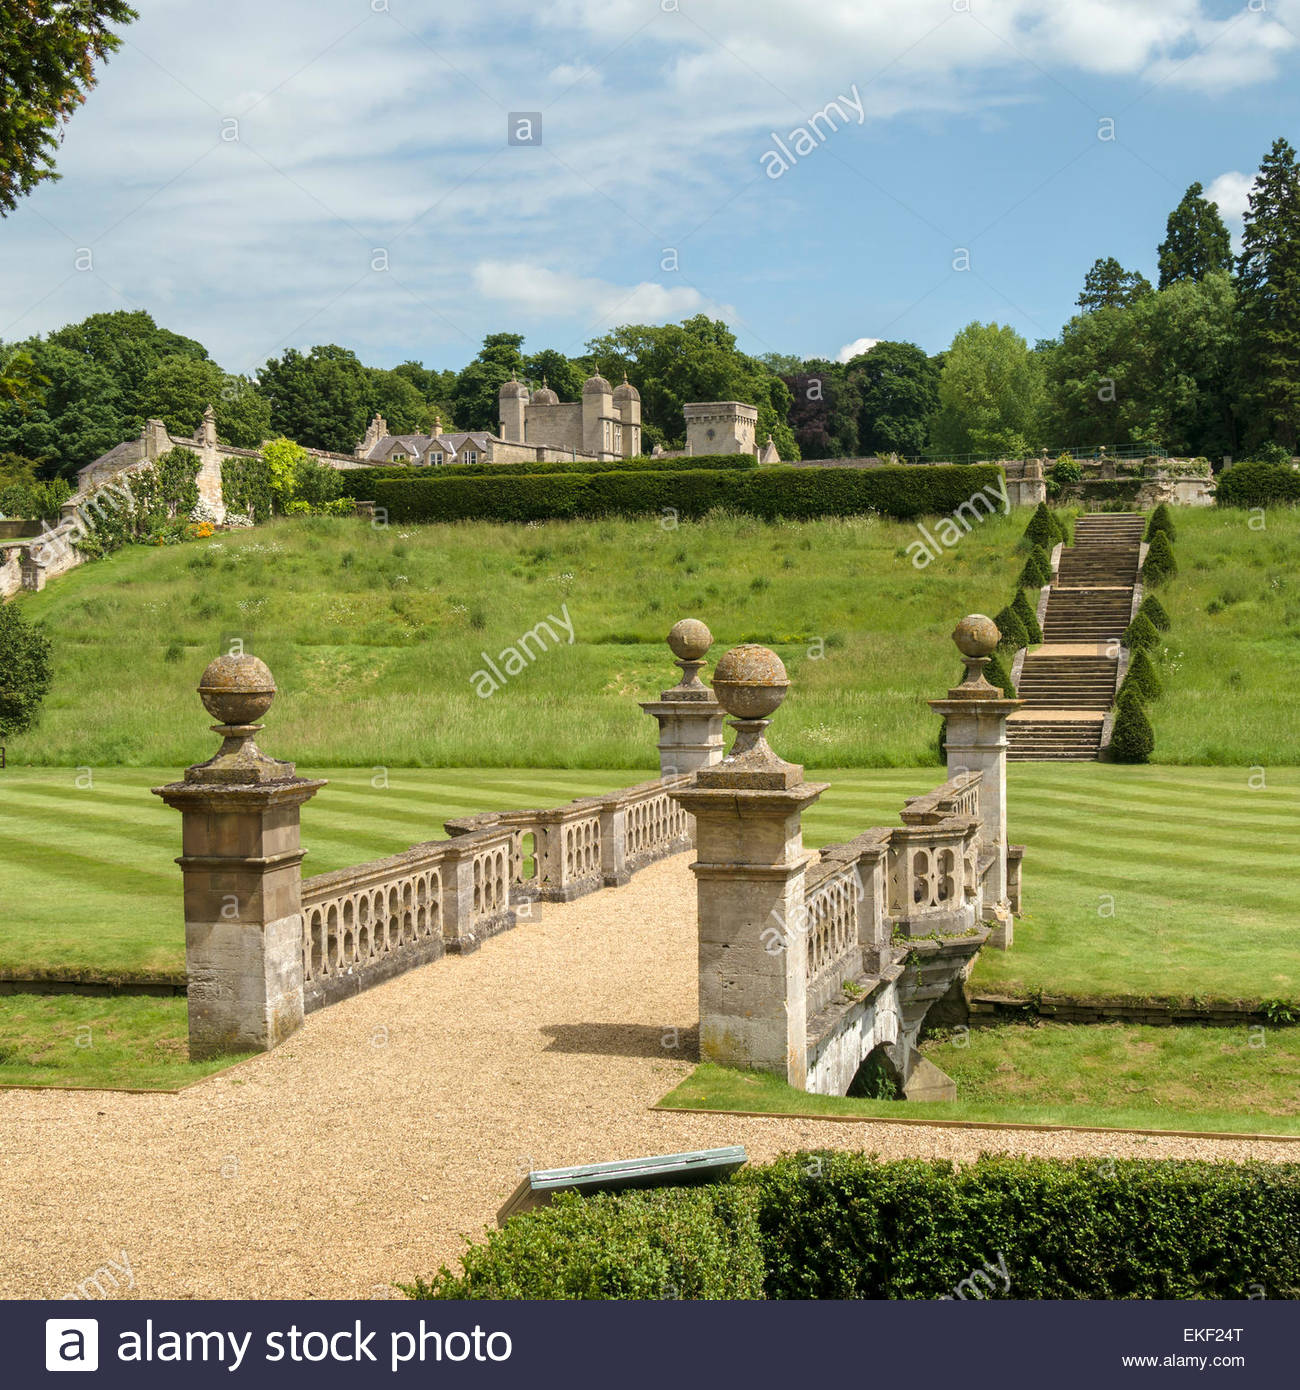 Bridge over River Witham and landscaped gardens, Easton Walled Gardens, Grantham, Lincolnshire, England, UK. - Stock Image